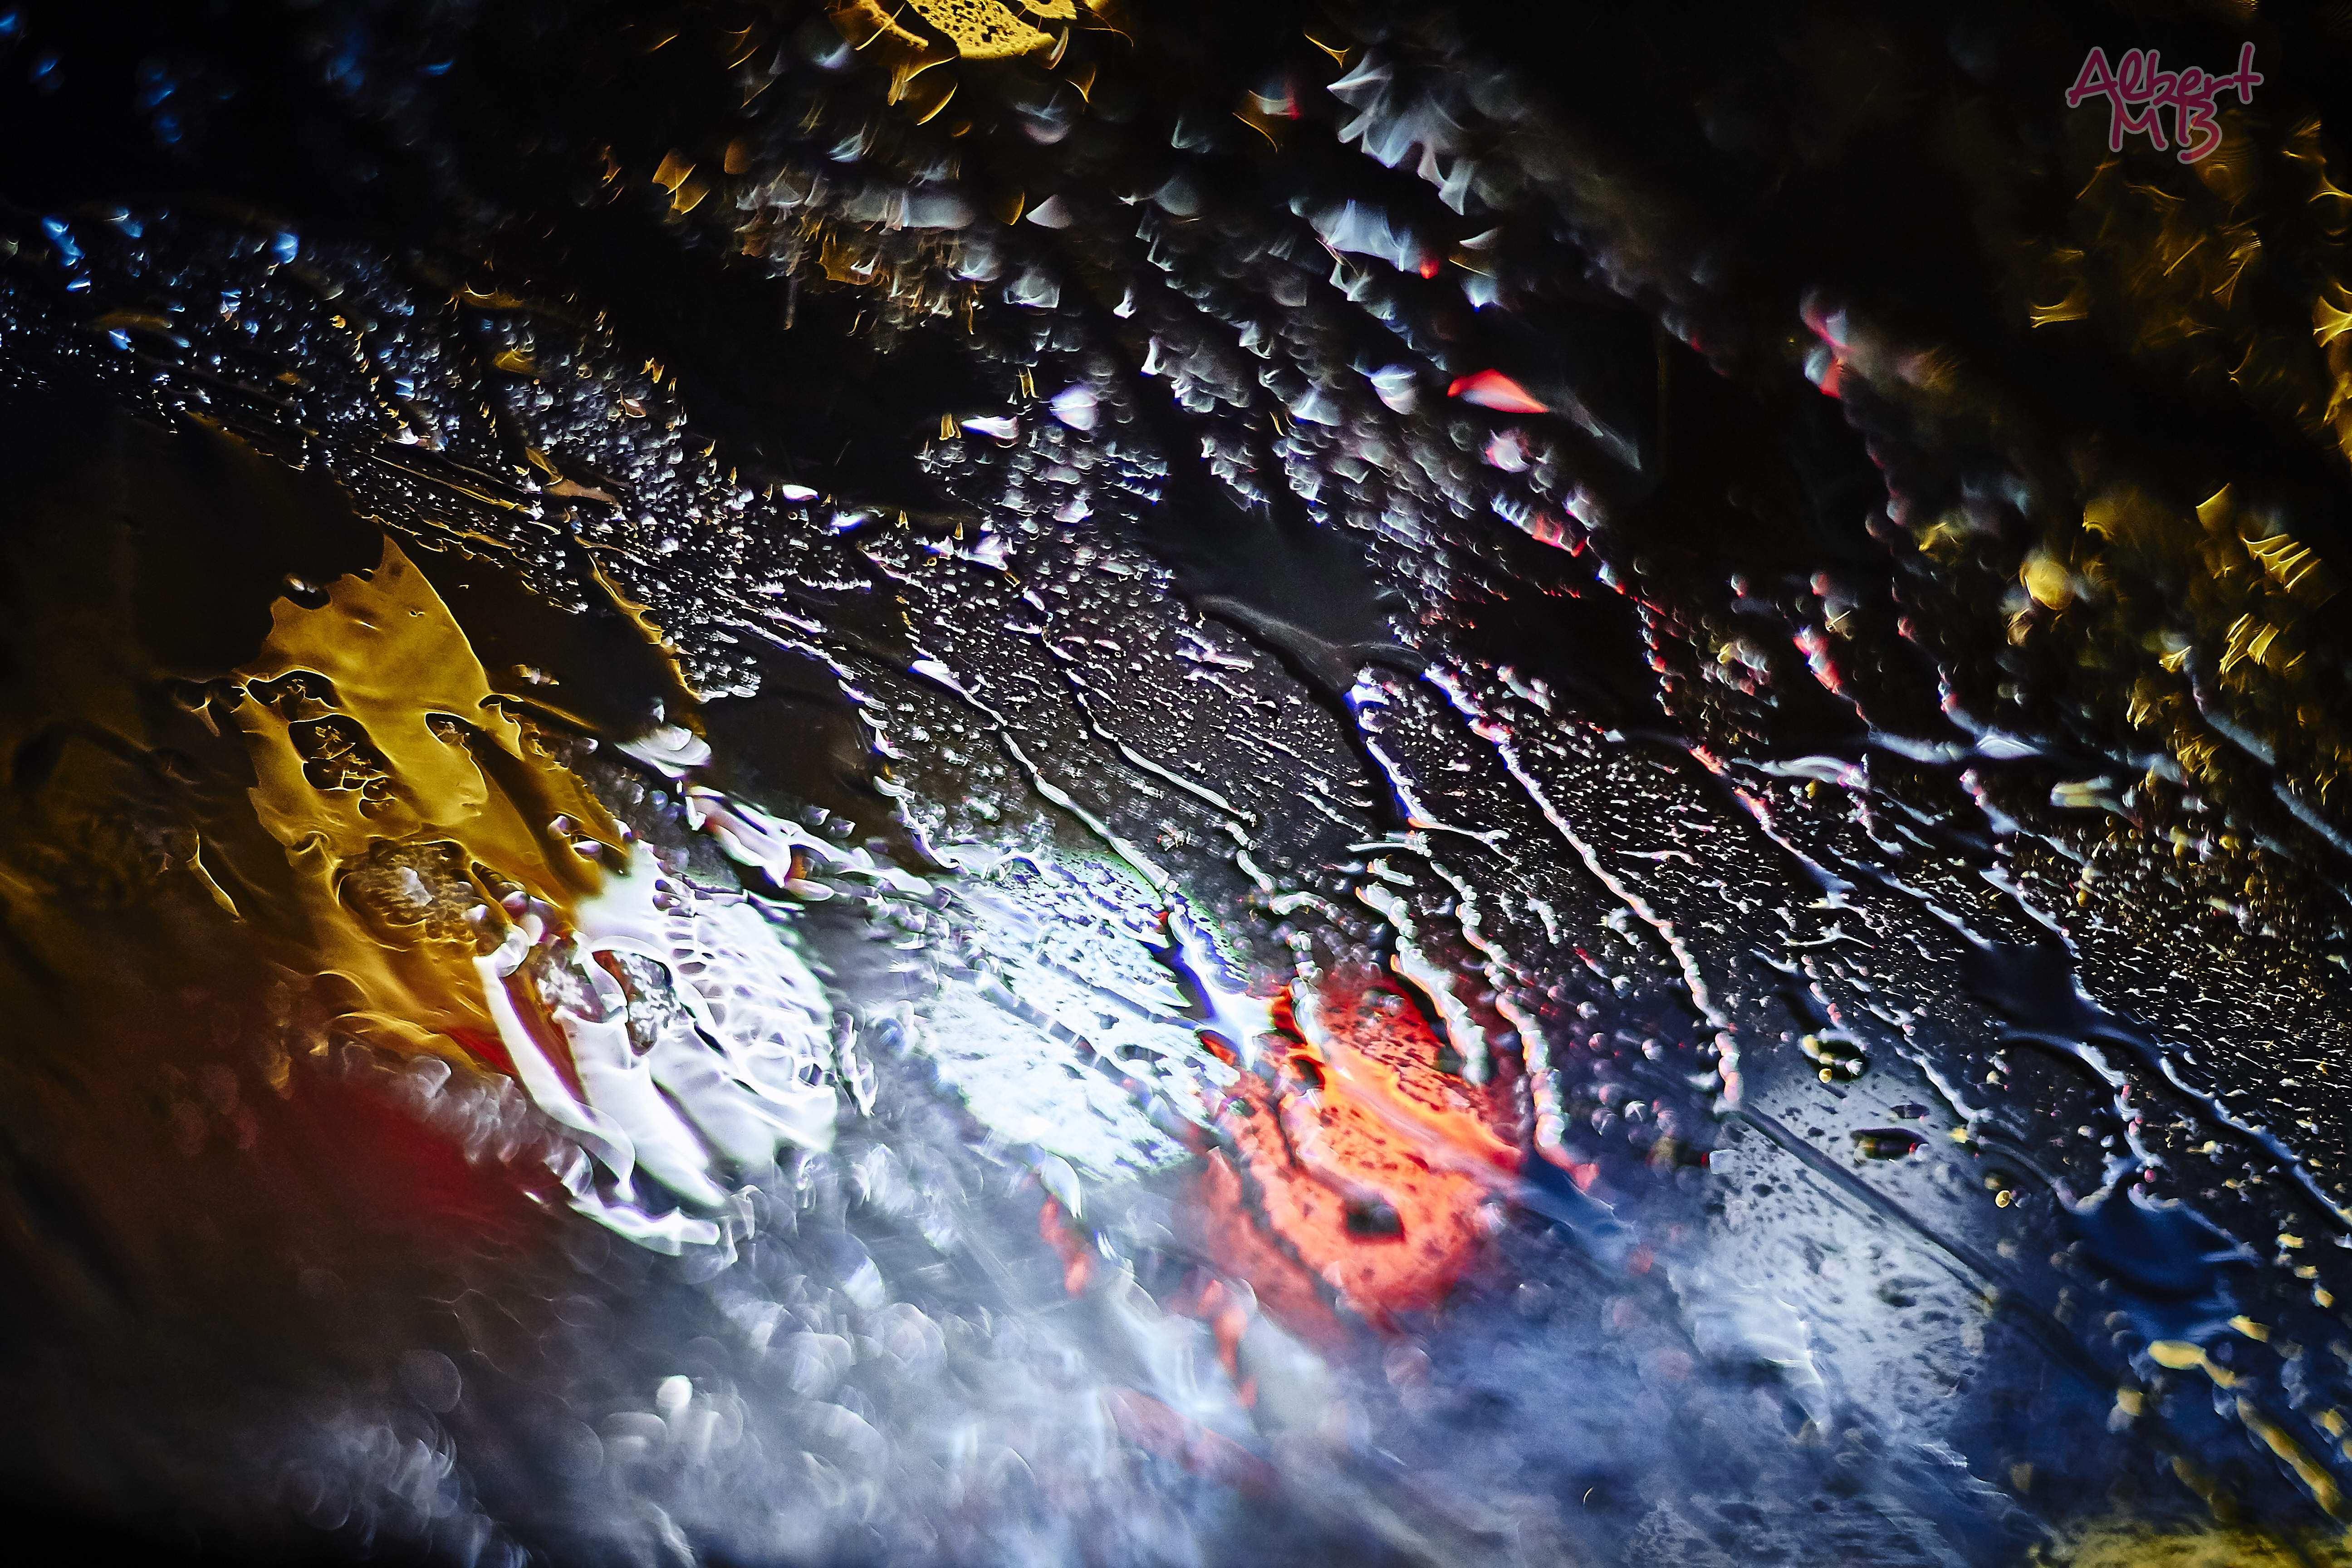 8k Rain Couple Wallpaper: Drops Wallpapers And Desktop Backgrounds Up To 8K